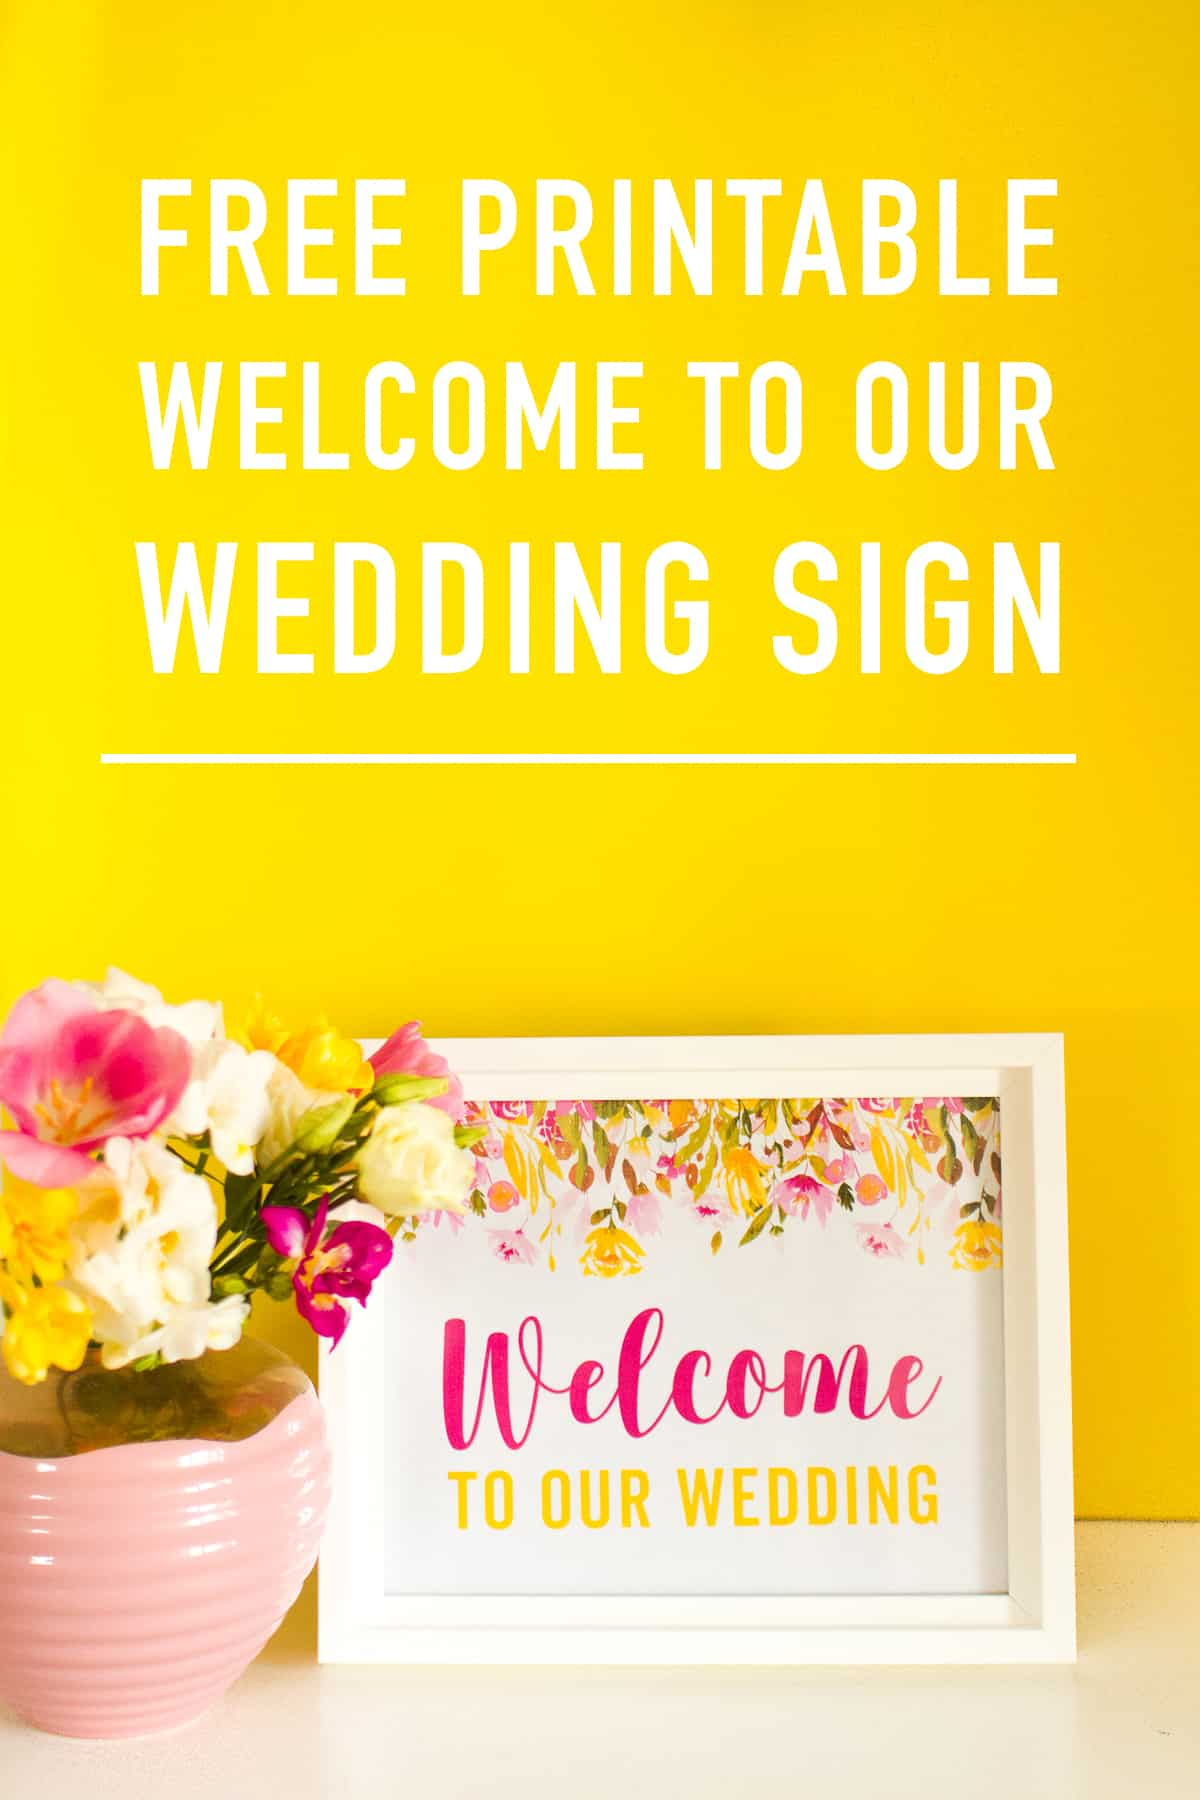 Free Printable Welcome To Our Wedding Sign Spring Floral